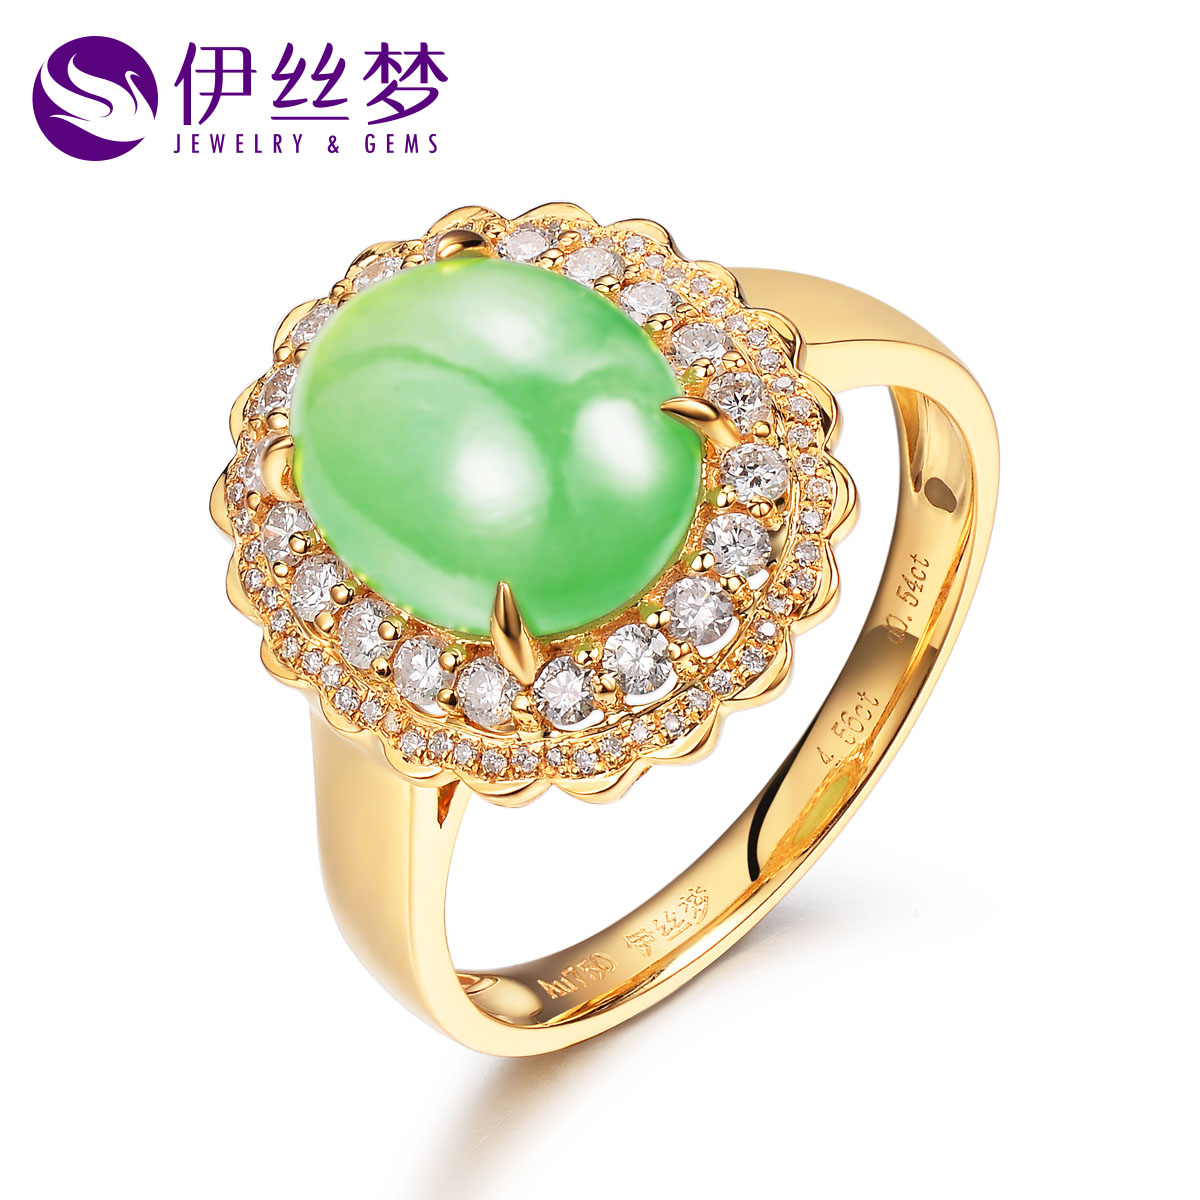 Lois dreams original jewelry 5 karat k gold with natural prehnite ring diamond nvjie multicolored light luxury models